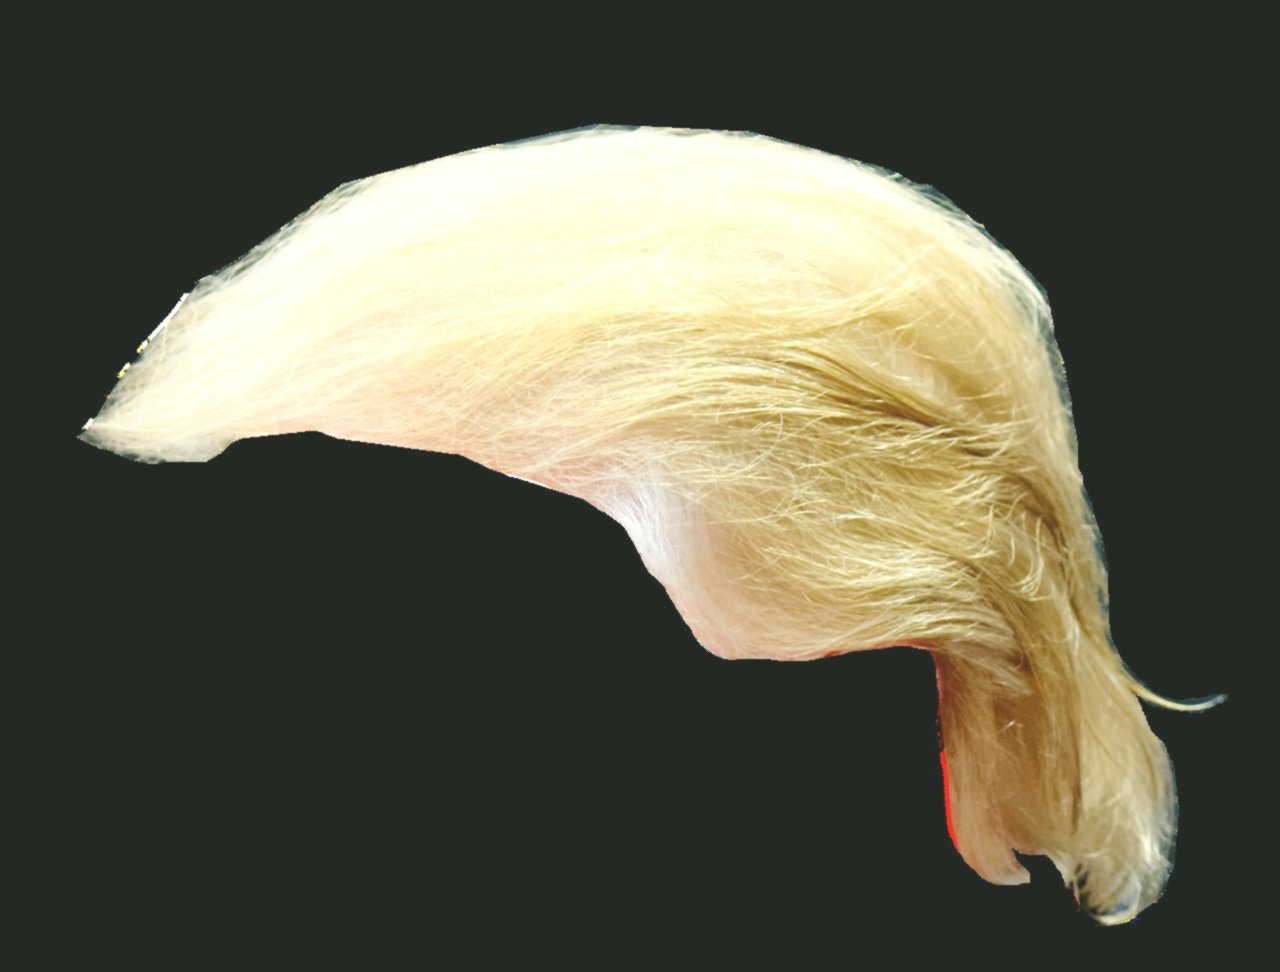 fascinating trump hairstyle photo-Cute Trump hairstyle concepts